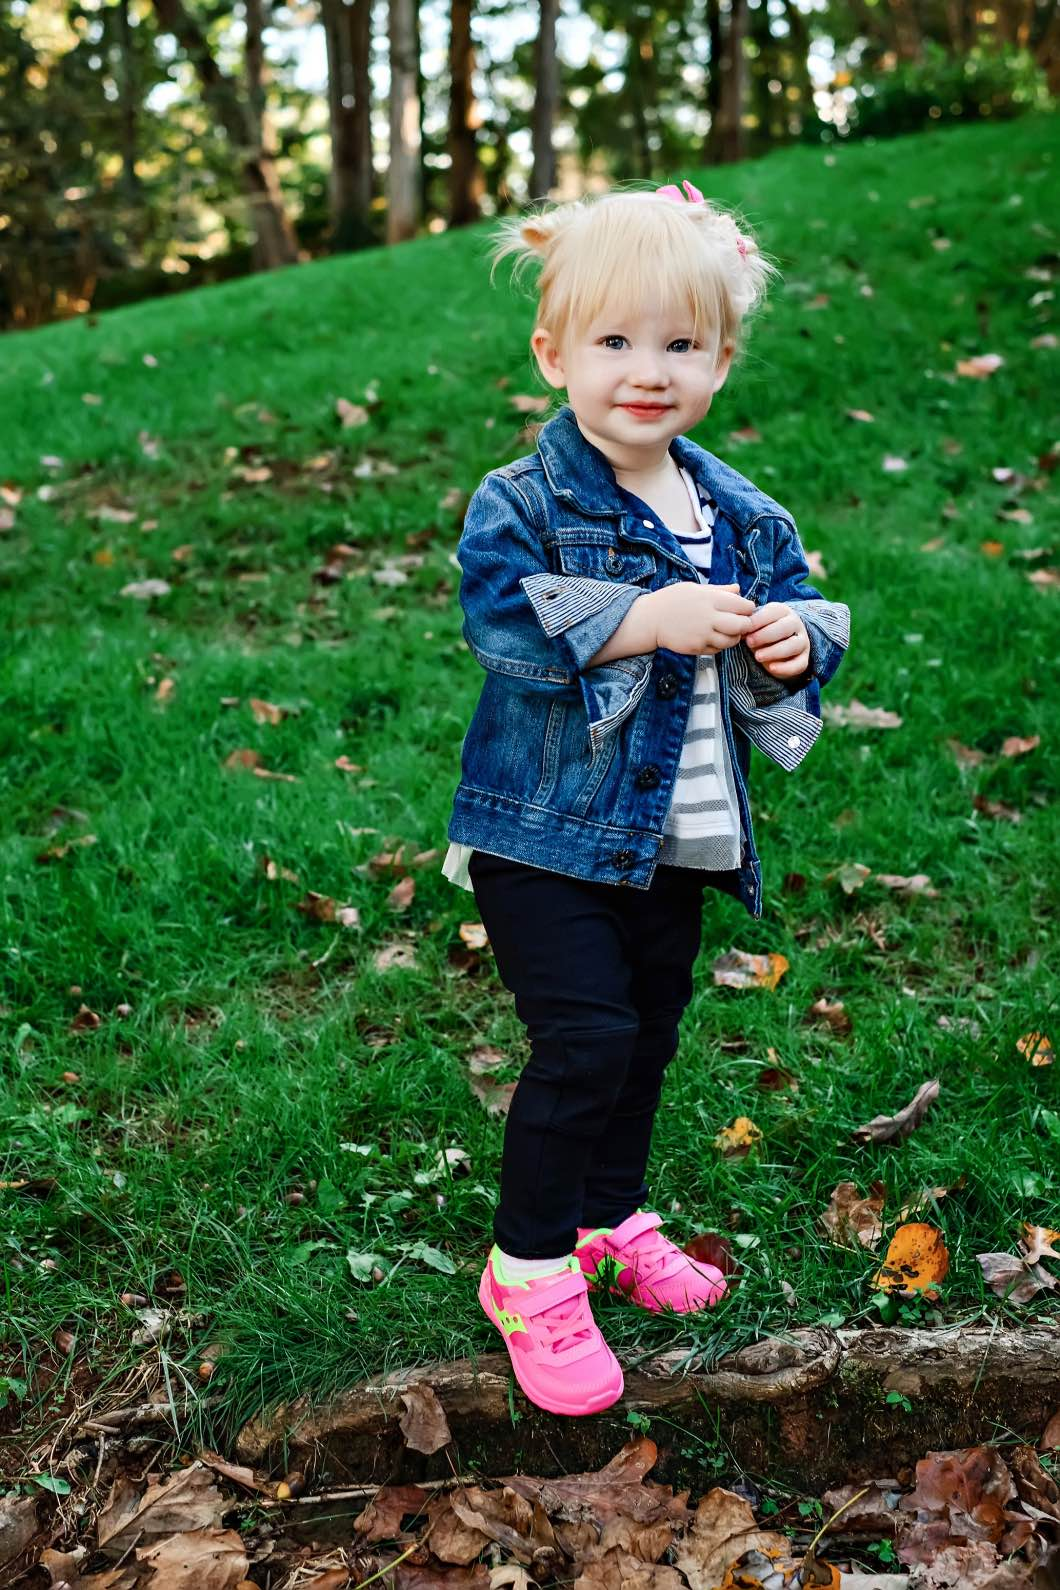 atlantachildmodelkidsshoes - Great Toddler Shoes for Girls by Atlanta mom blogger Happily Hughes